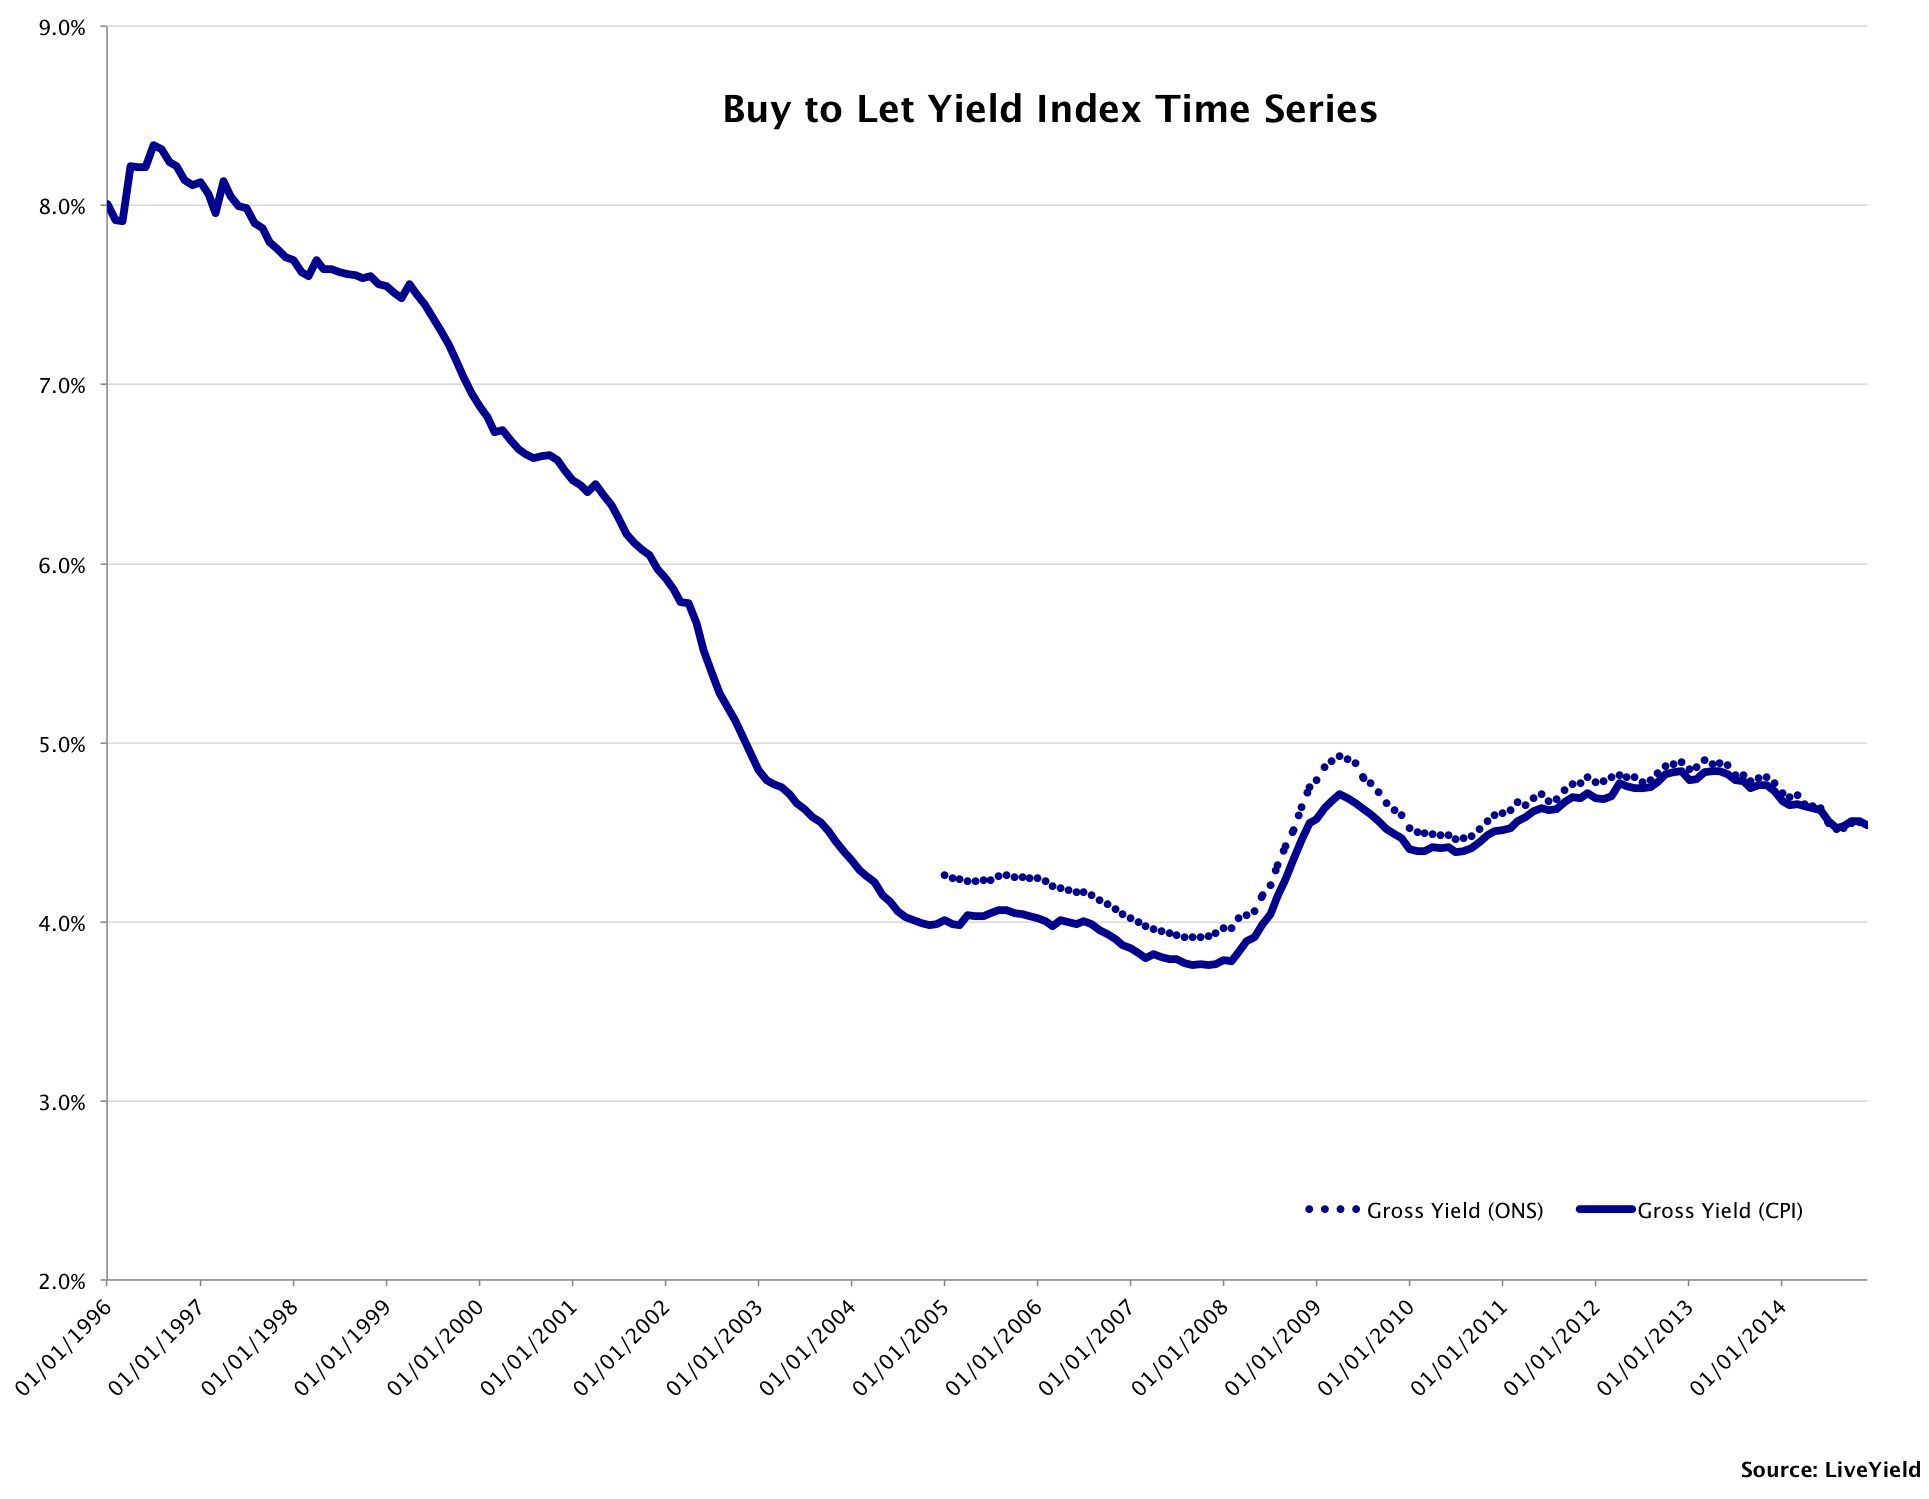 UK Buy to let Yield Time Series